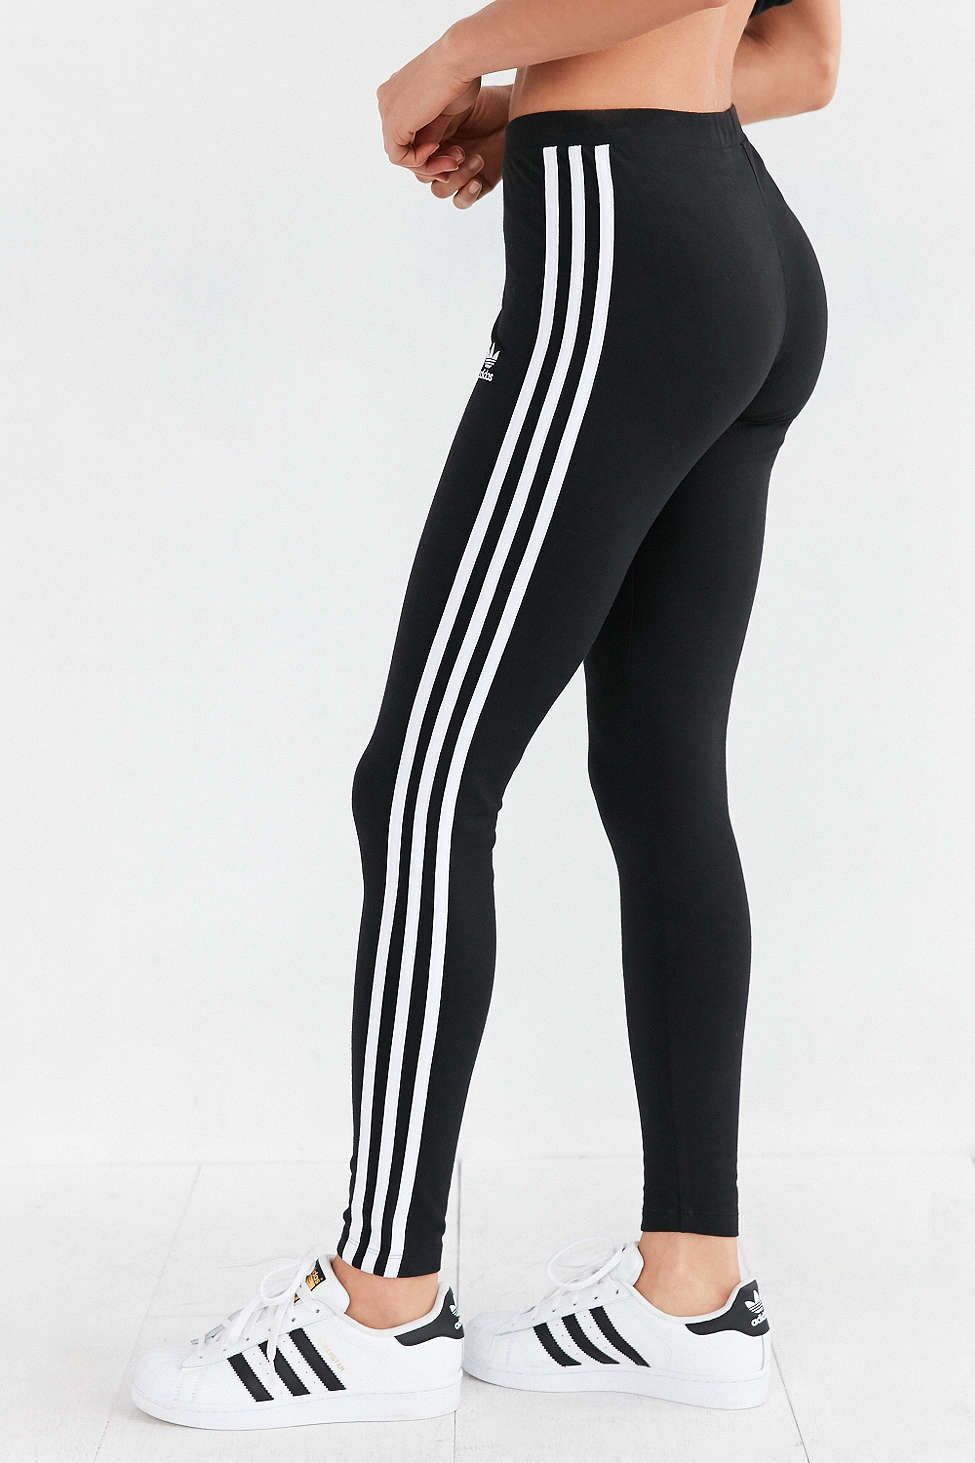 adidas Originals 3 Stripes Legging - Urban Outfitters 8a0be3f5ab